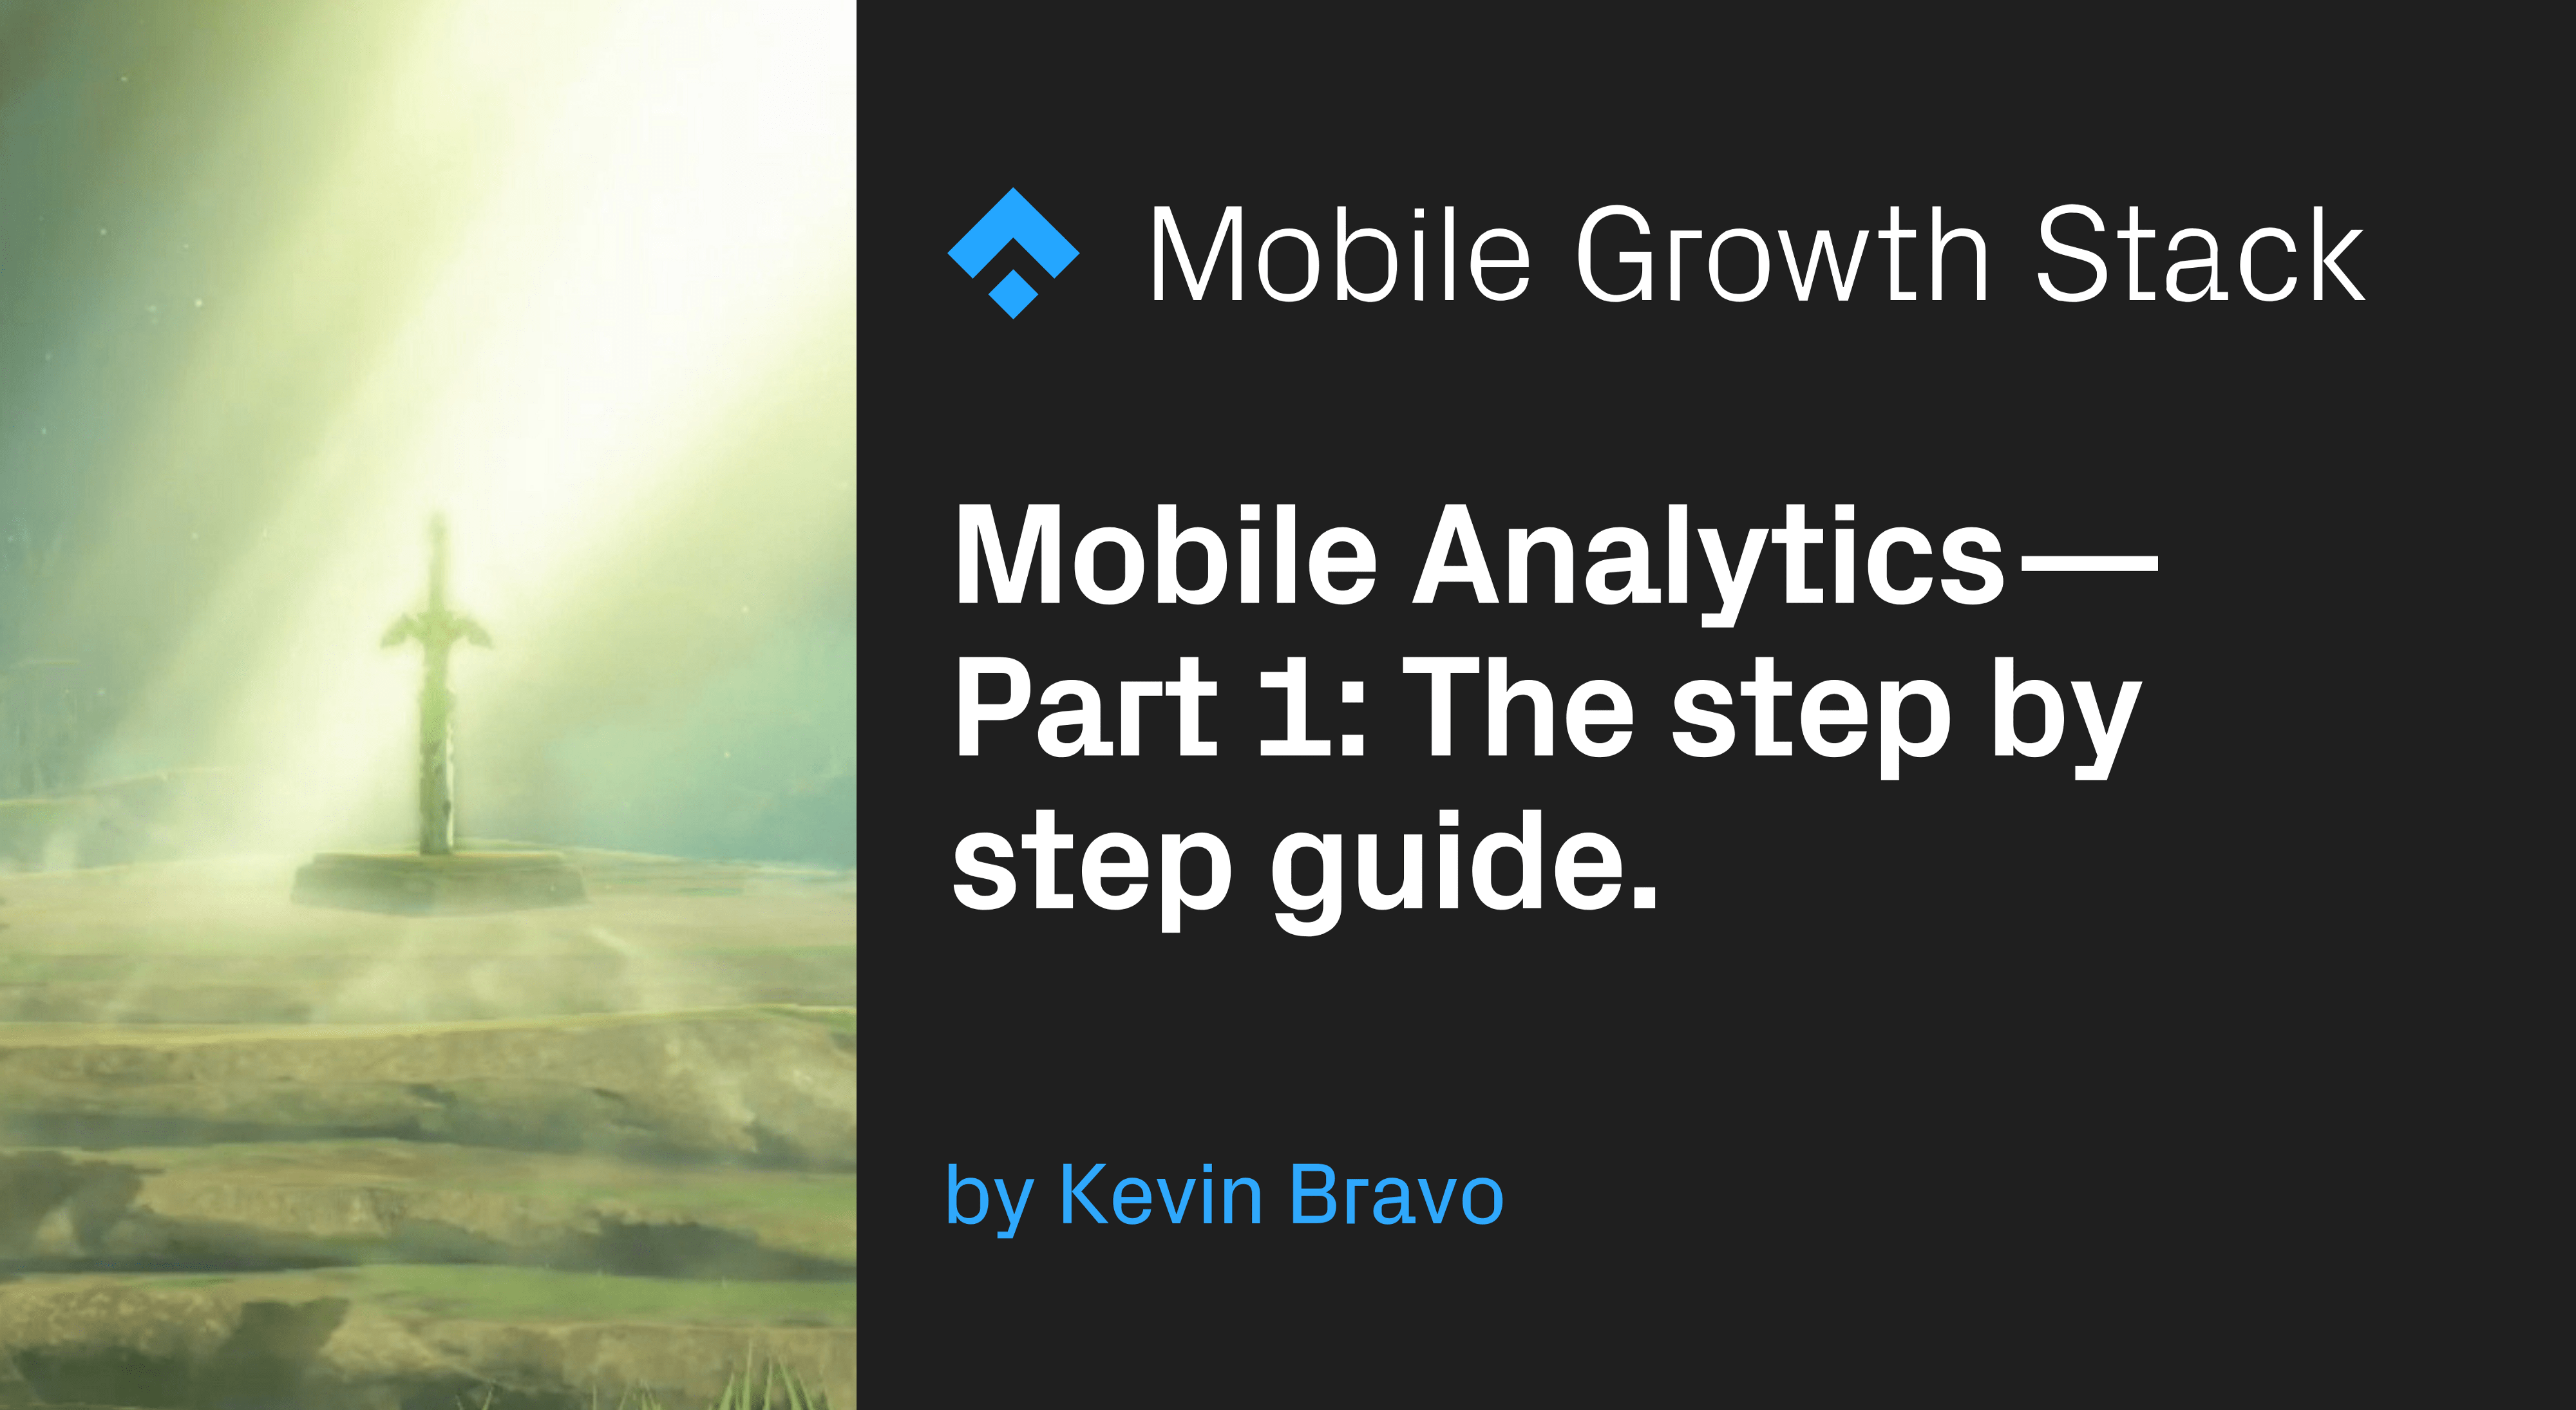 Mobile Analytics — Part 1- The step by step guide